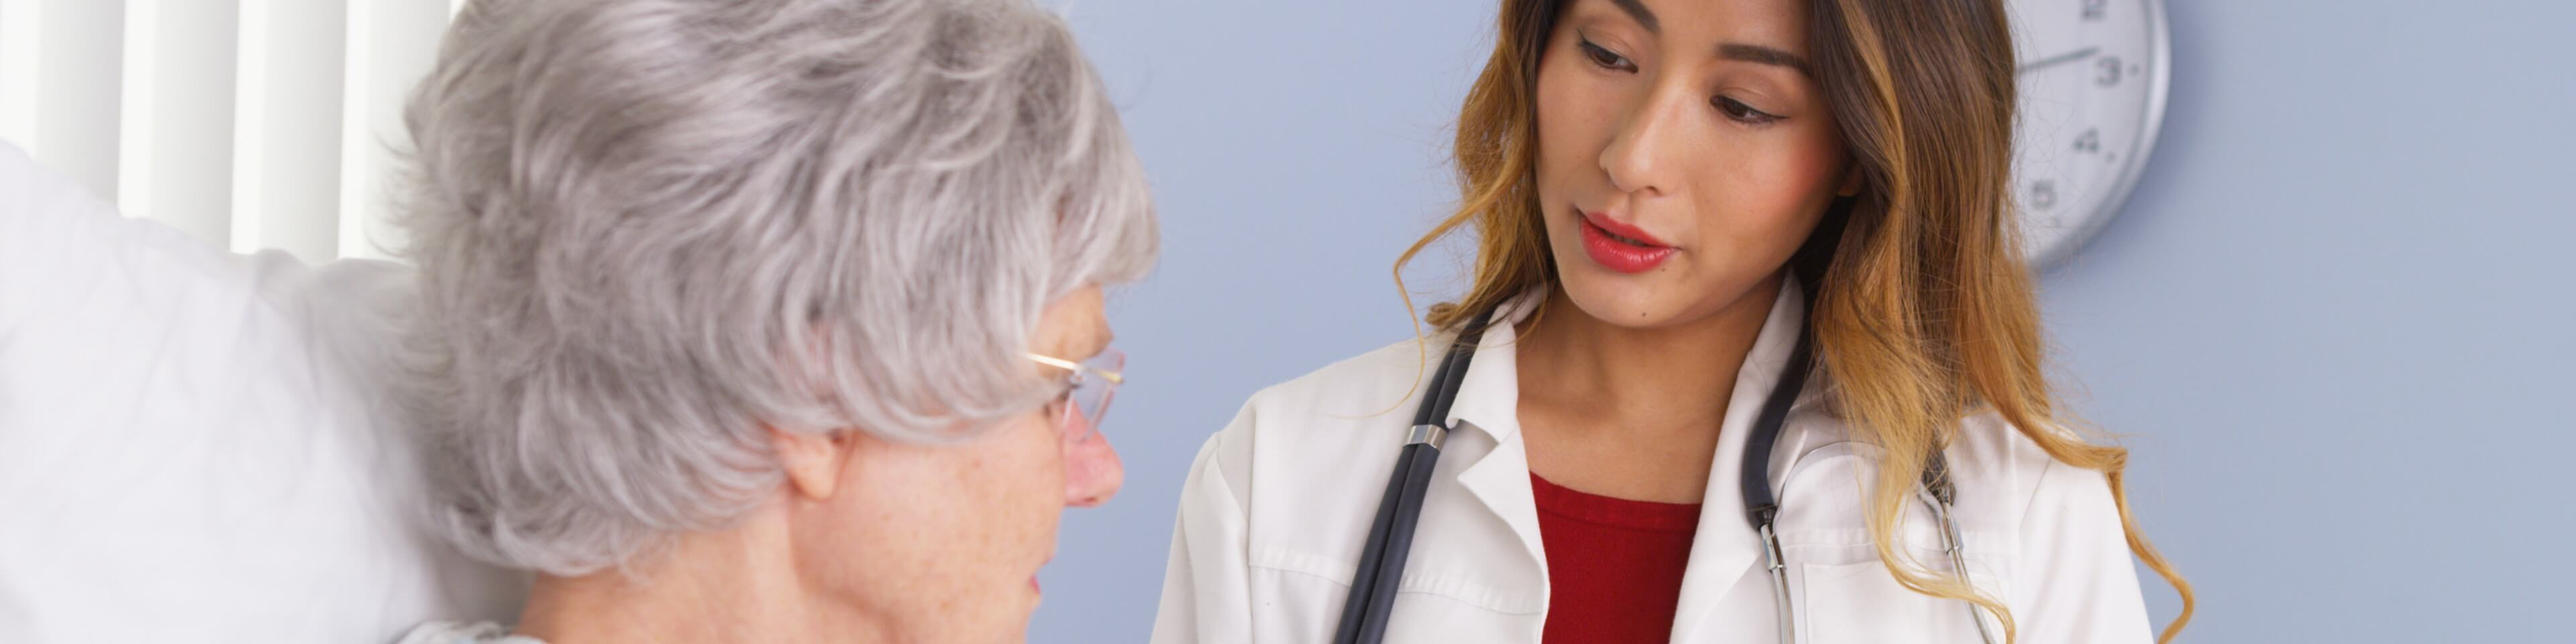 Female doctor speaking with a patient